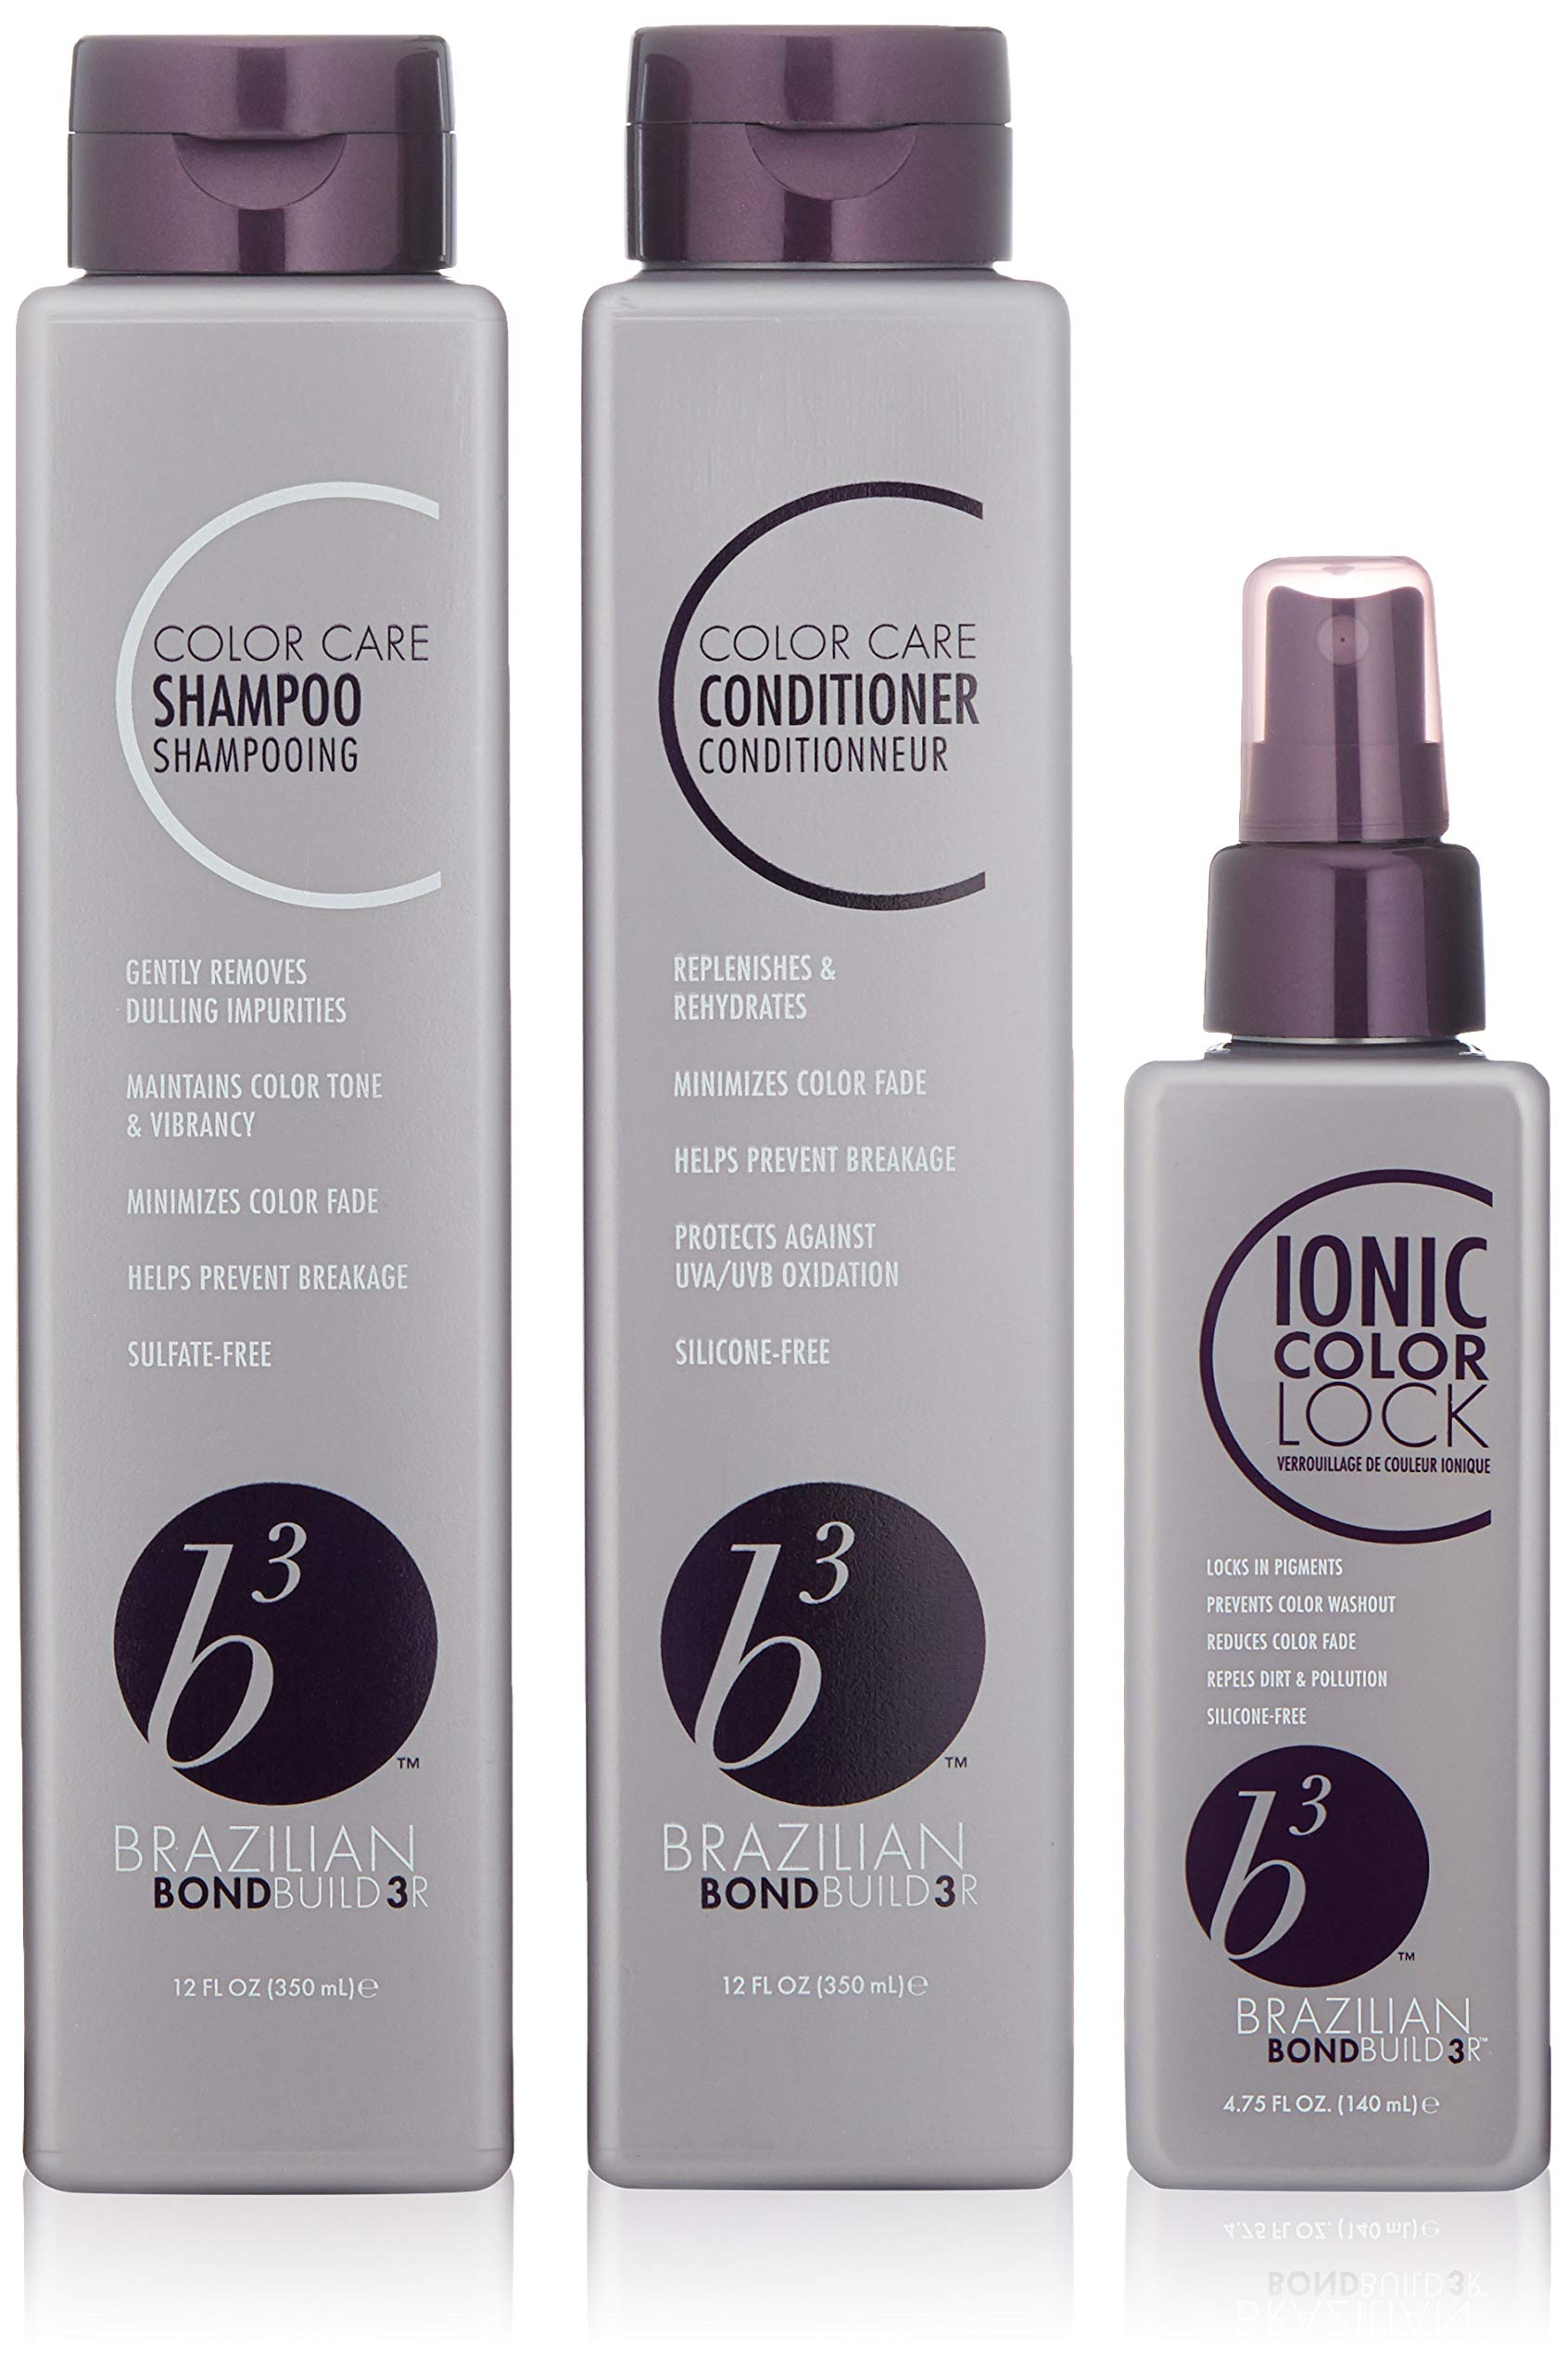 B3 Shampoo/Conditioner/Ionic Color Lock Trio Pack by B3 BRAZILIAN BONDBUILDER